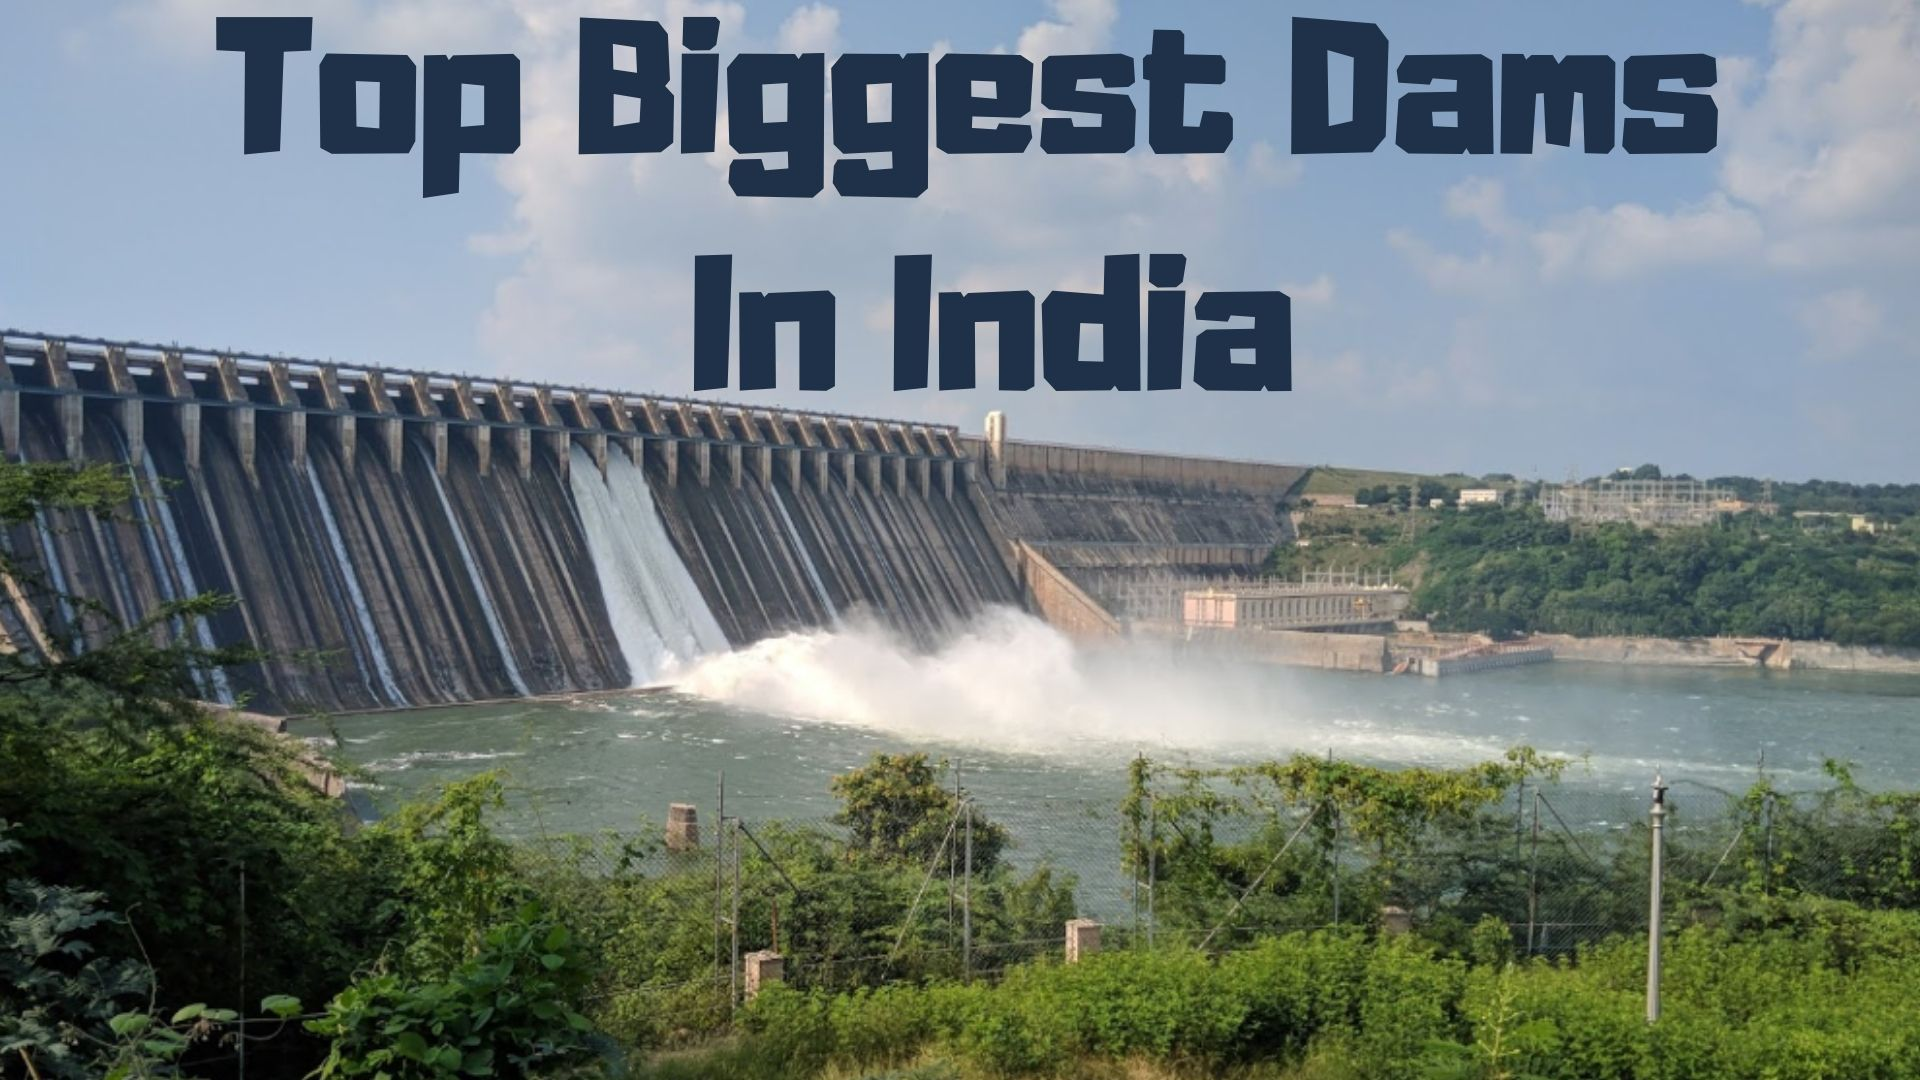 Top Biggest Dams in india